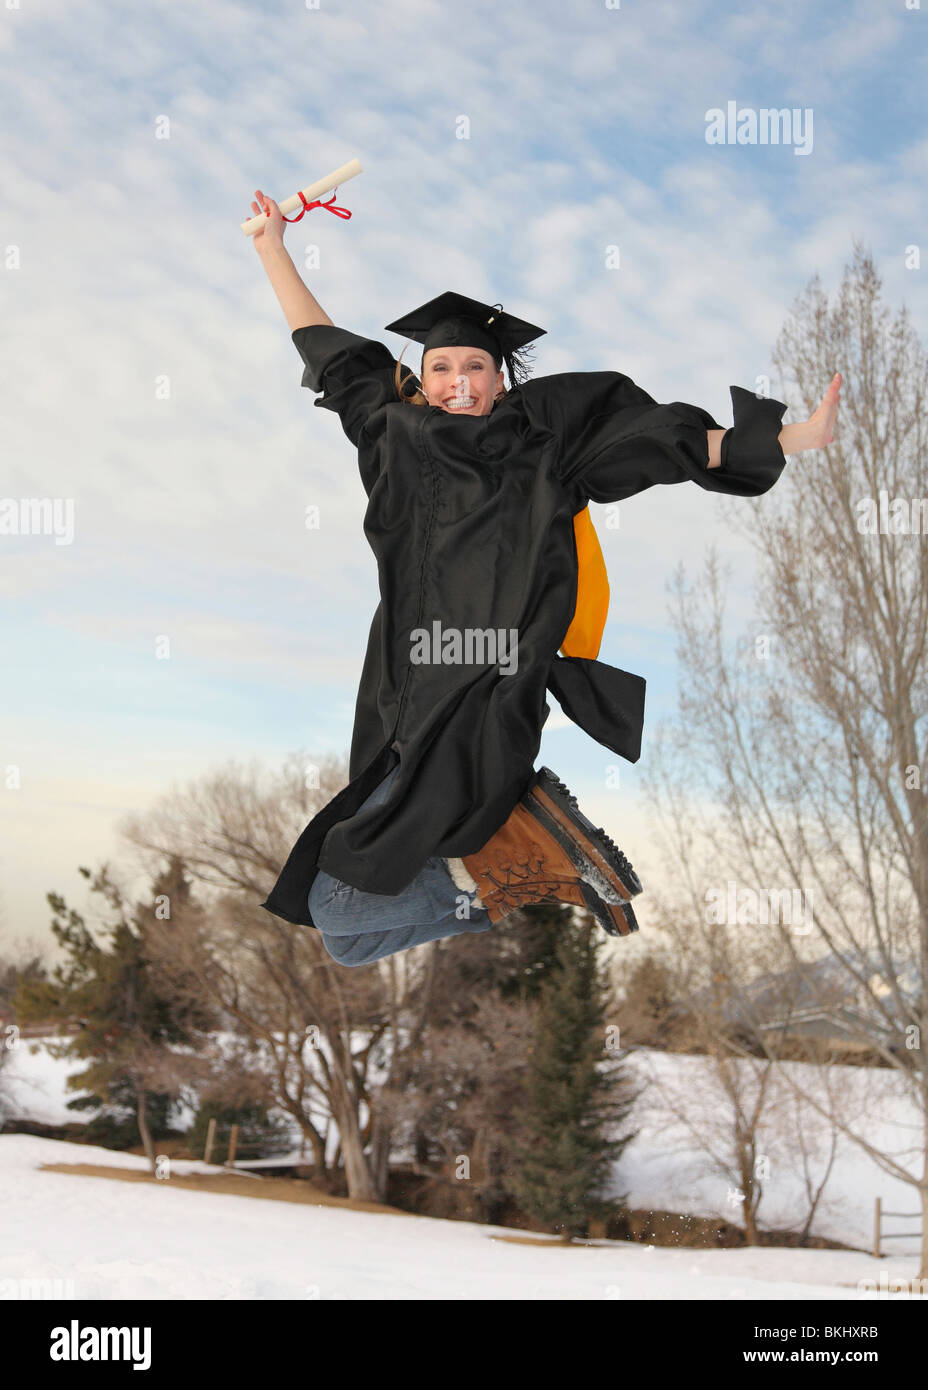 ff34e8e6777 excited blond woman in graduation outfit and diploma outdoors in winter  jumping high in the air